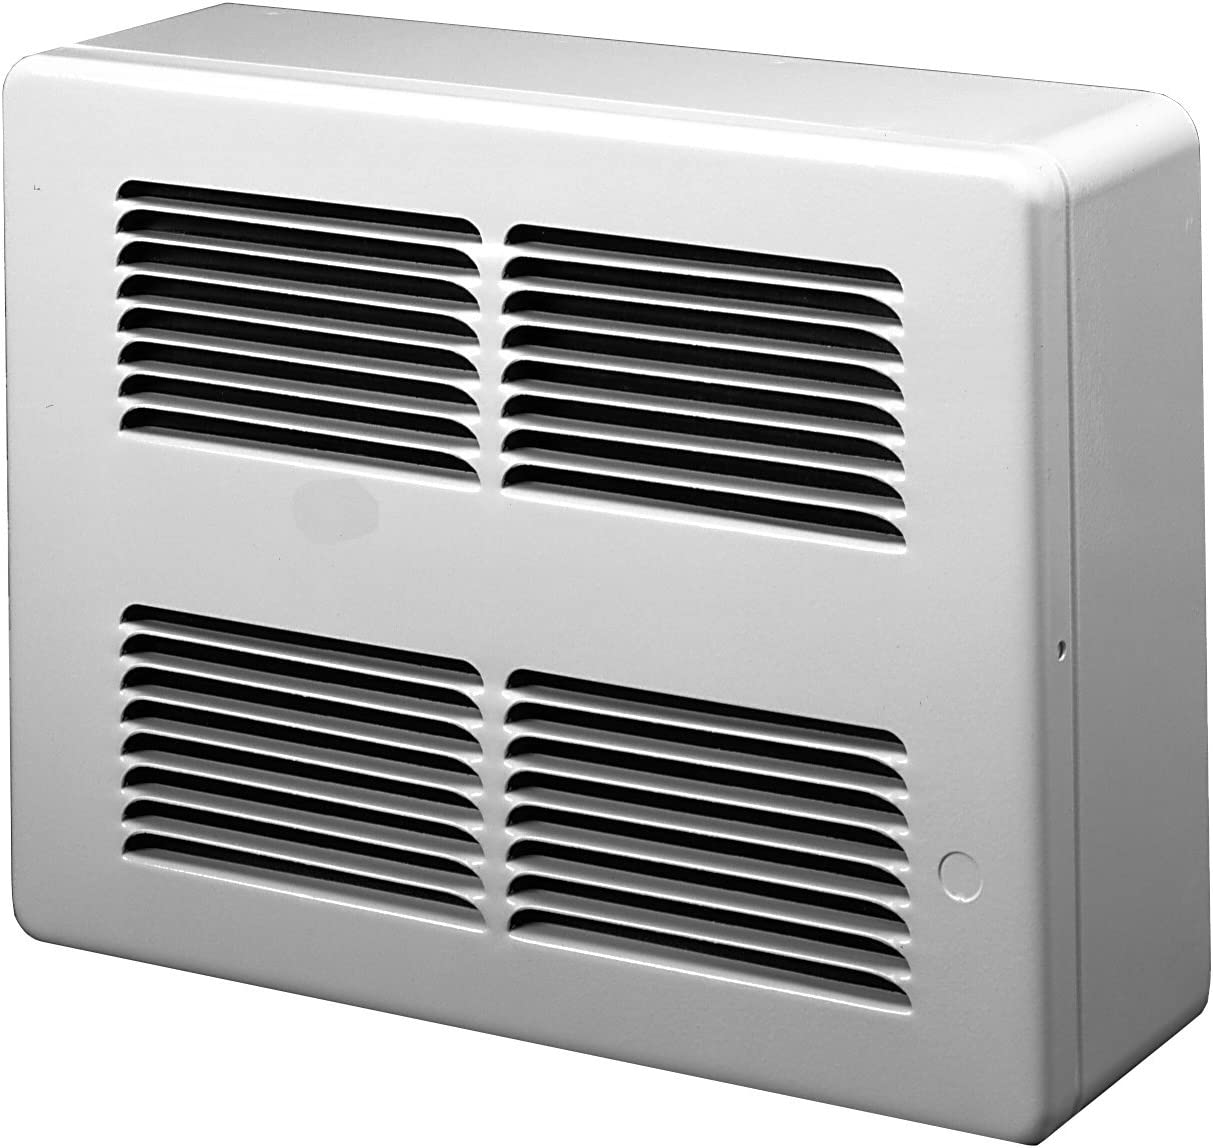 King Sl2422 Slim Line Surface Mounted Wall Heater 240 Volt White Heaters Amazon Com